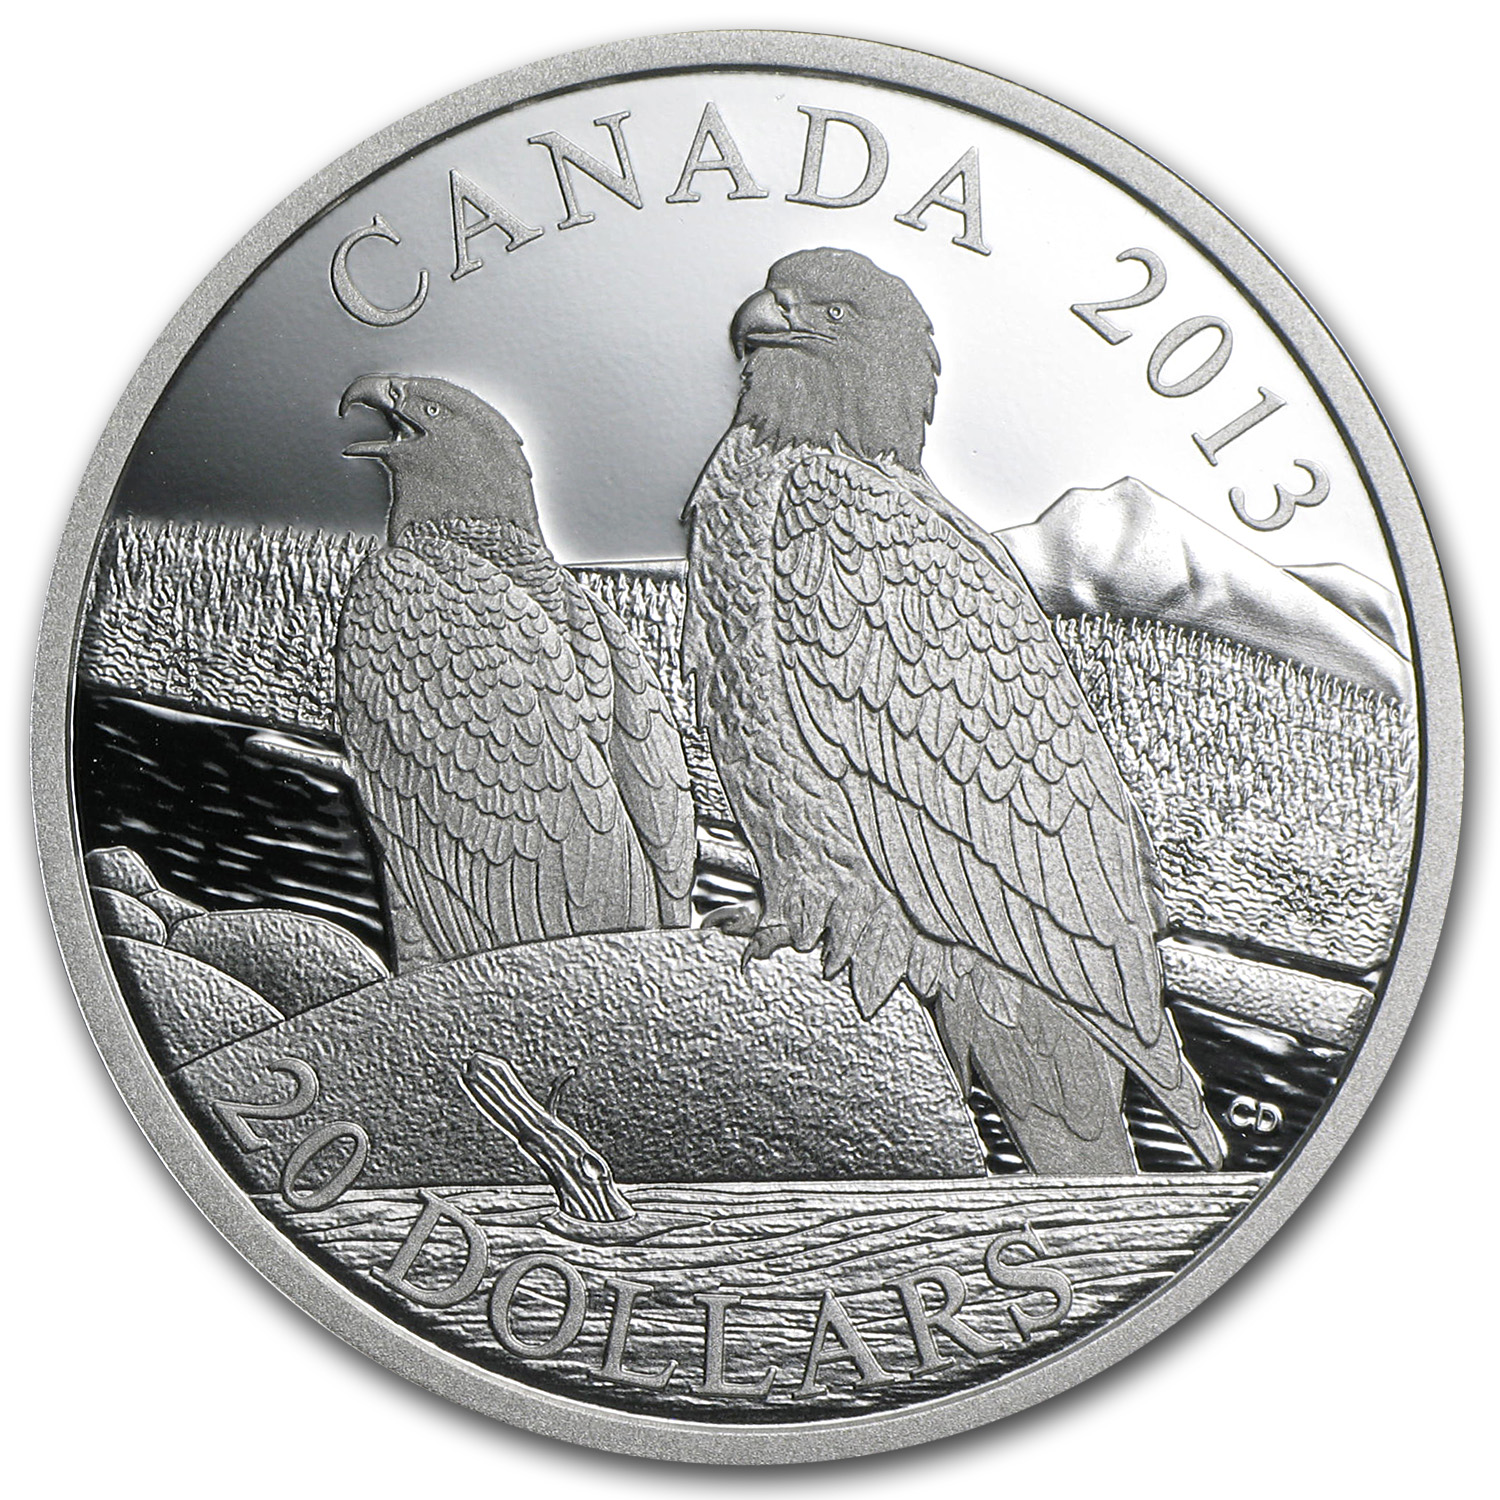 2013 Canada 1 oz Silver $20 The Bald Eagle Lifelong Mates